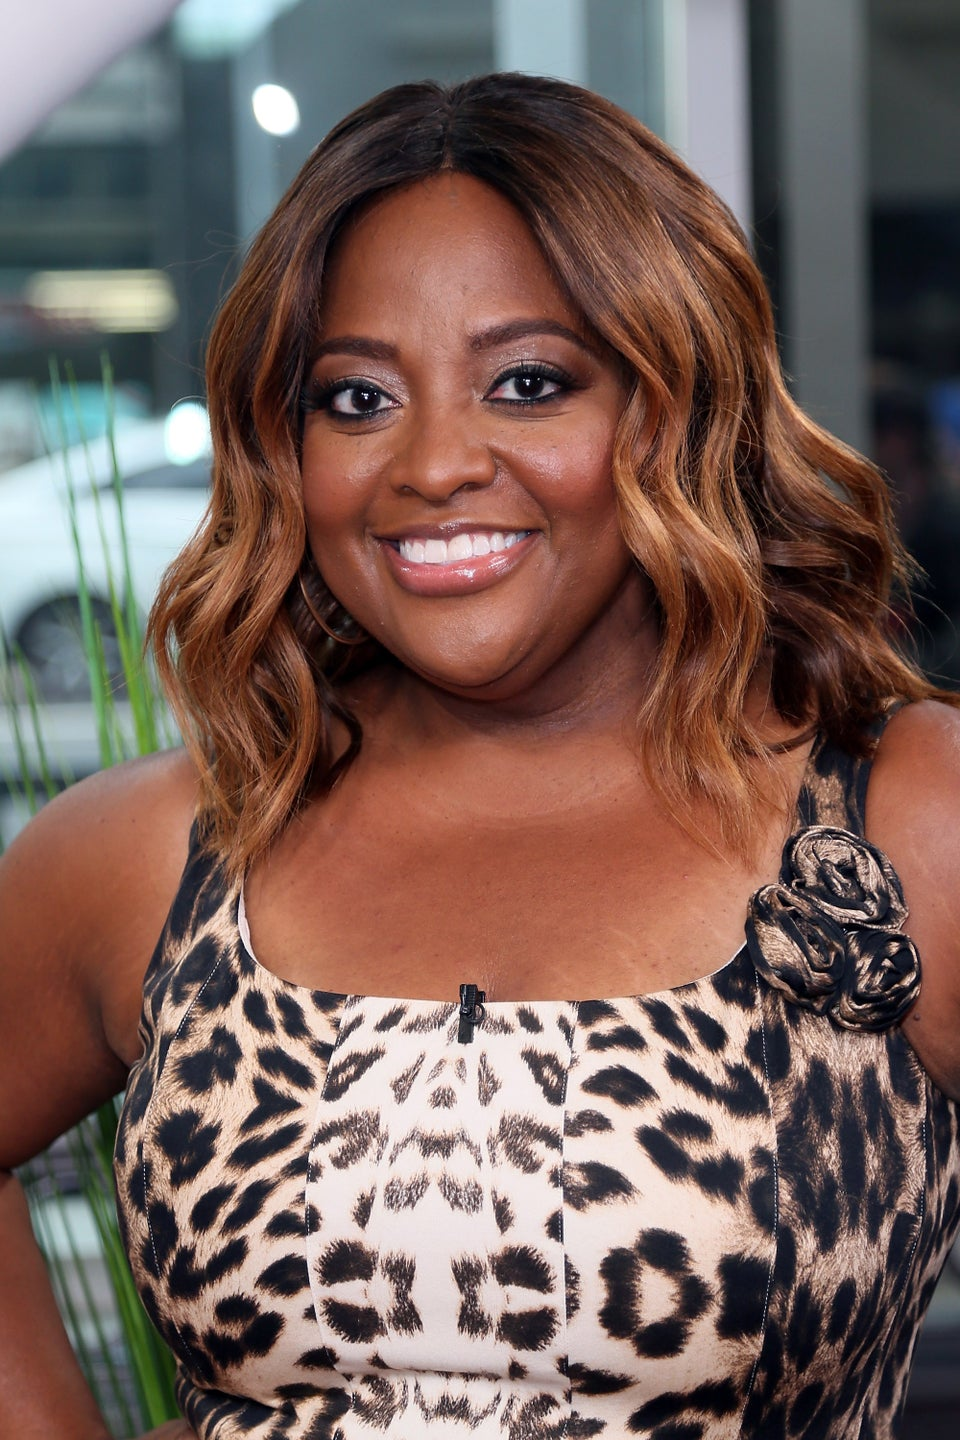 Sherri Shepherd Is Happy Her Surrogate Drama Is Behind Her: 'I'm Really at Peace'